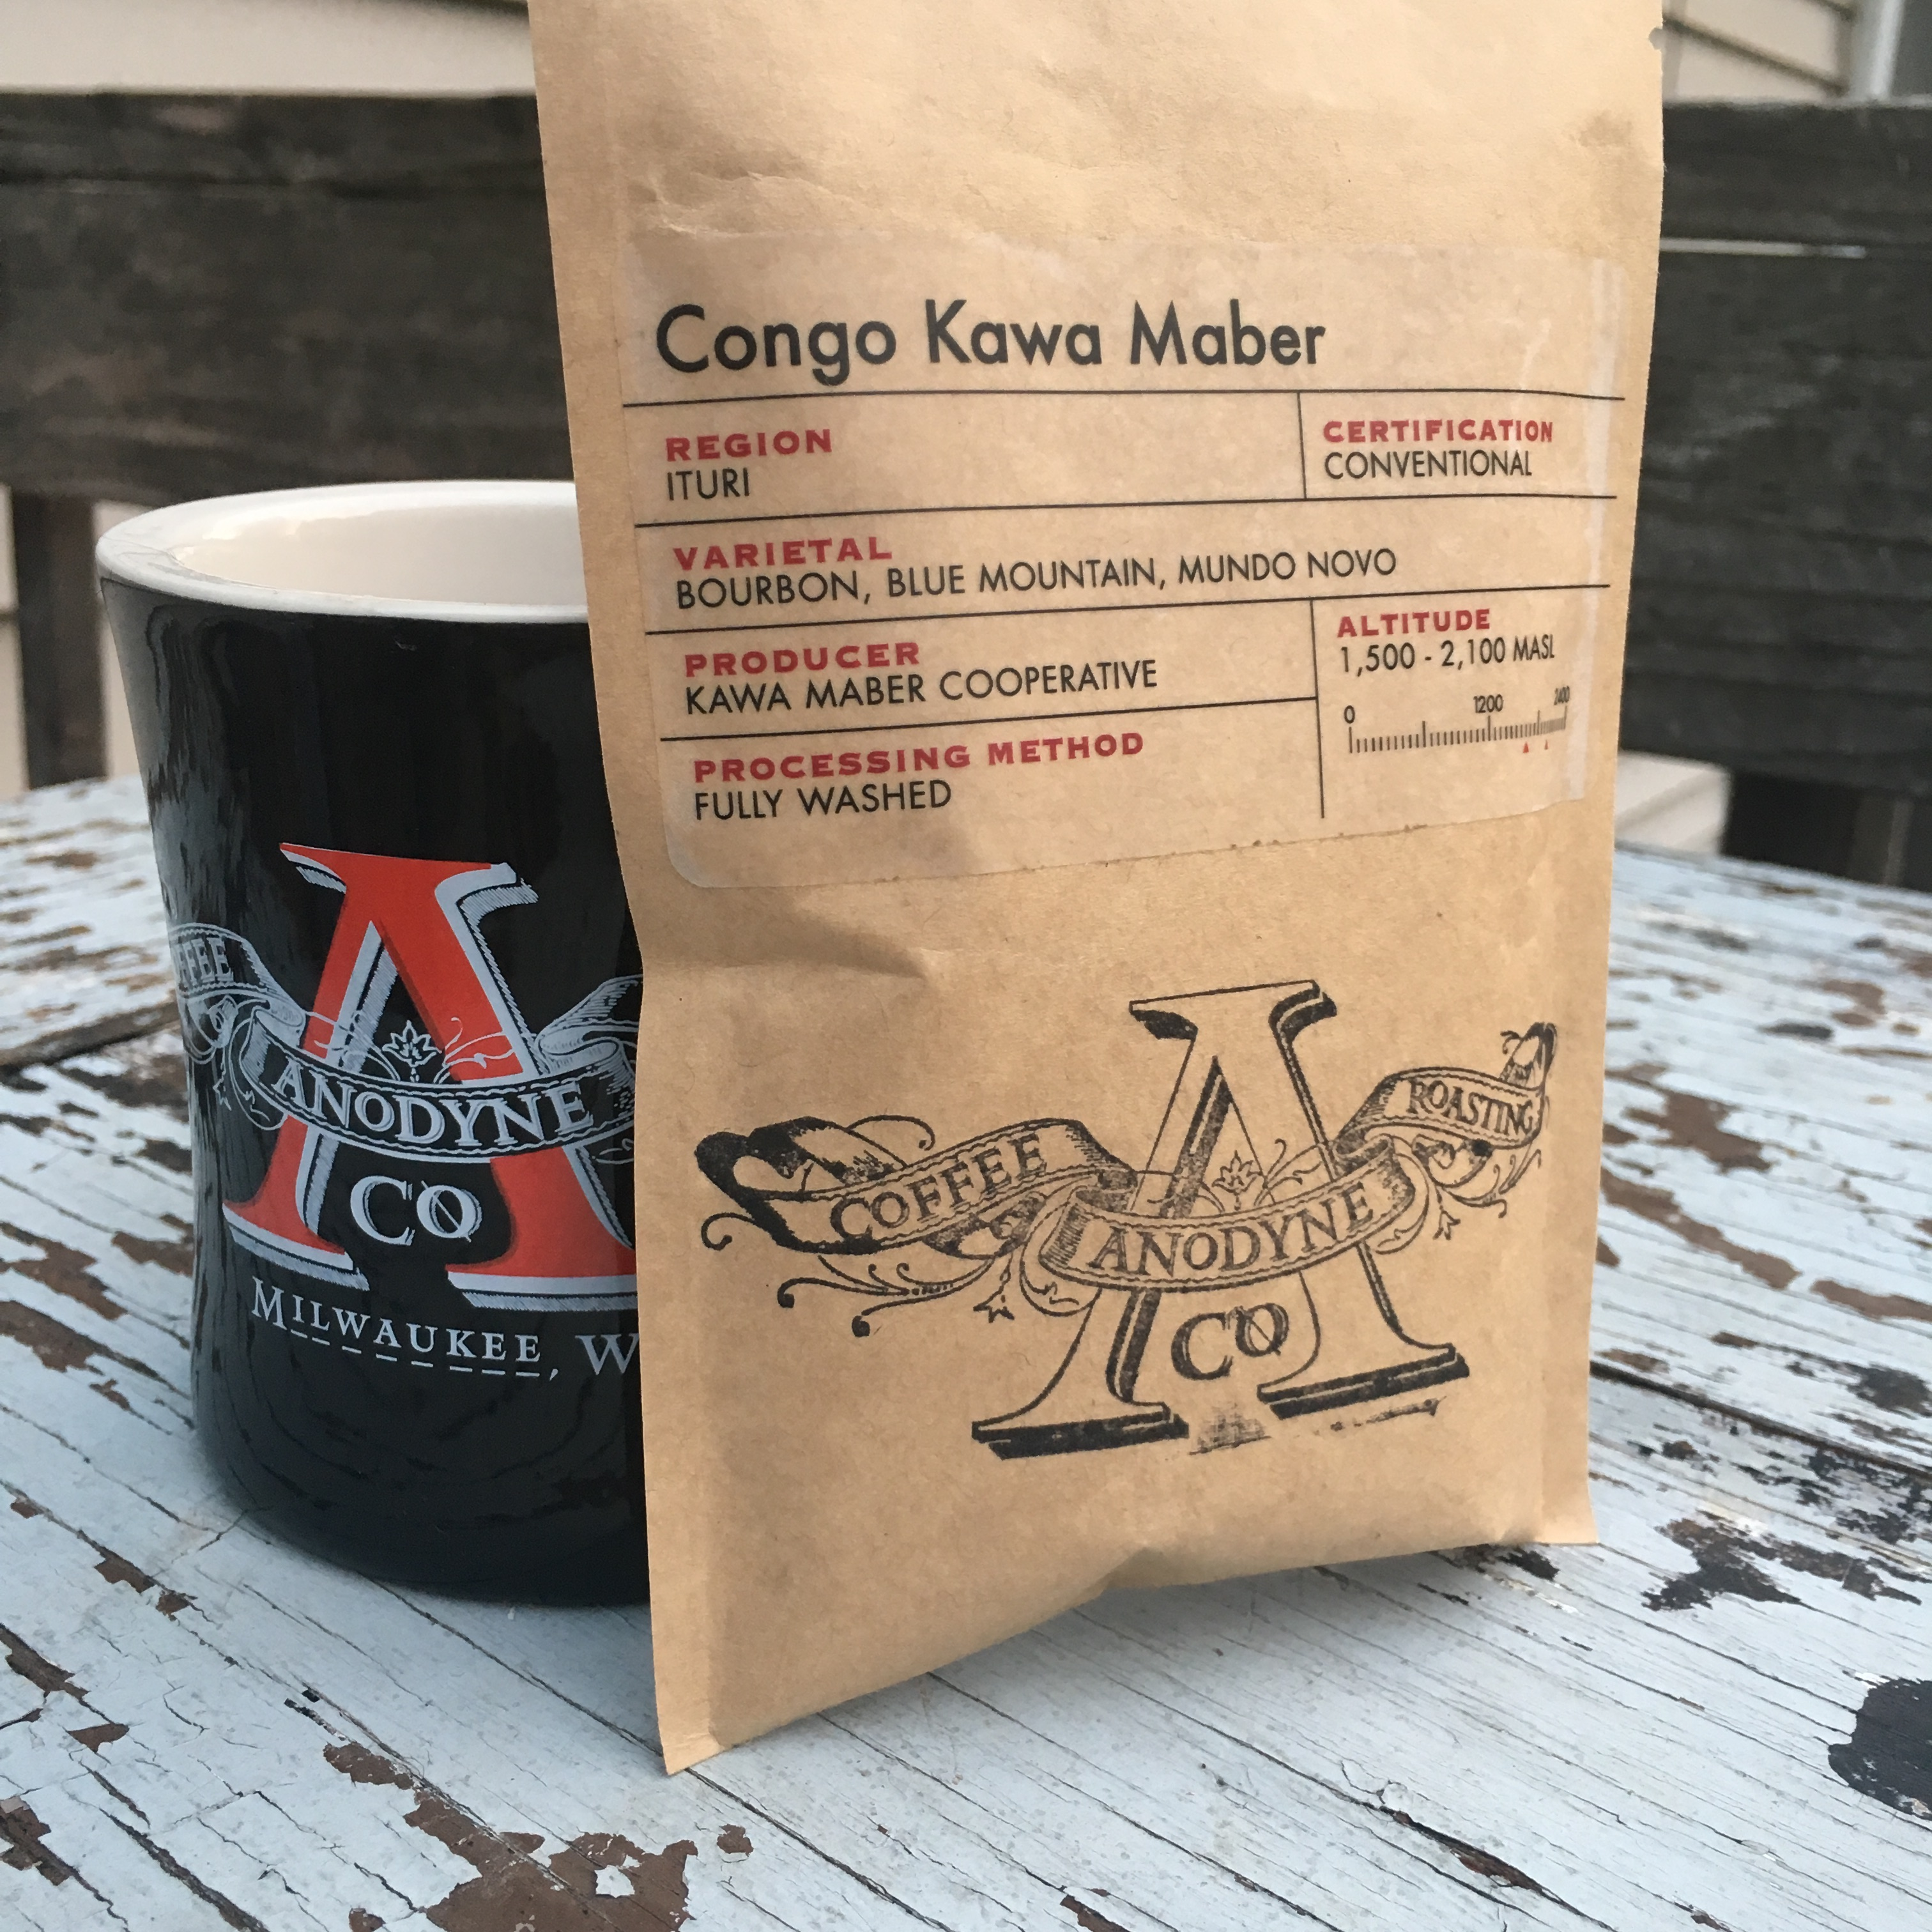 Anodyne Coffee Roasting Co. Congo Kawa Maber